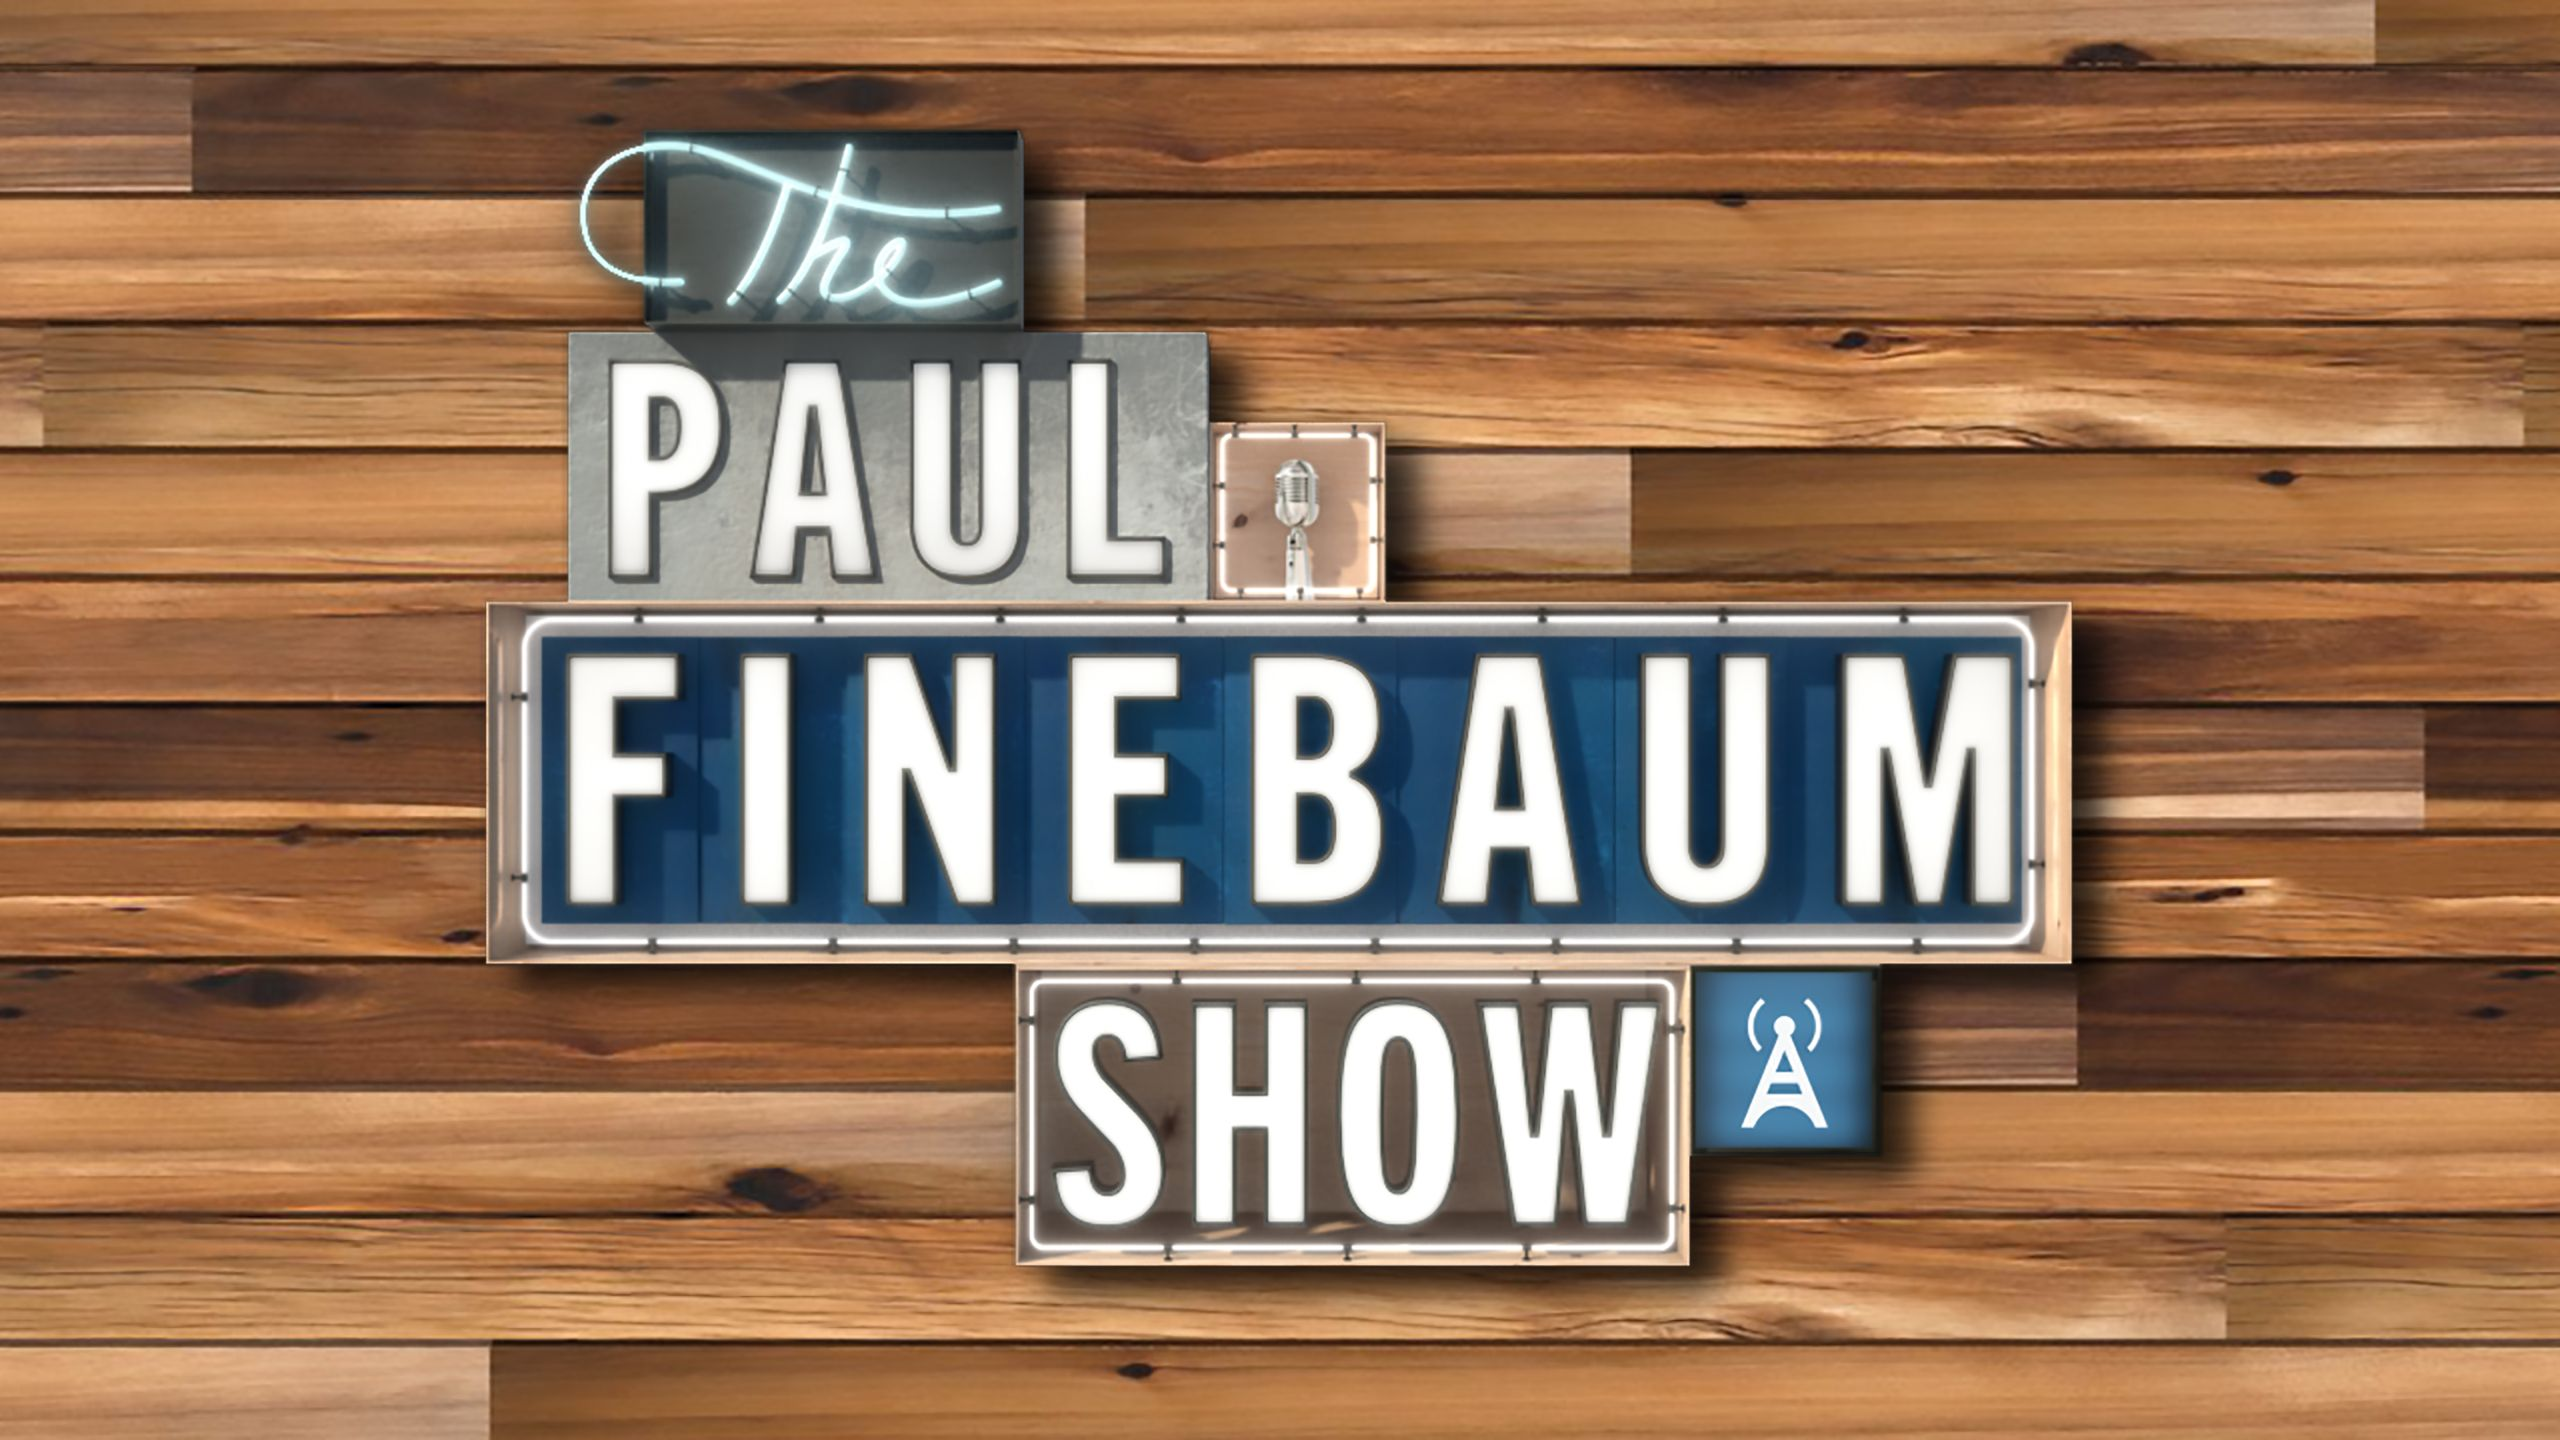 Tue, 6/19 - The Paul Finebaum Show